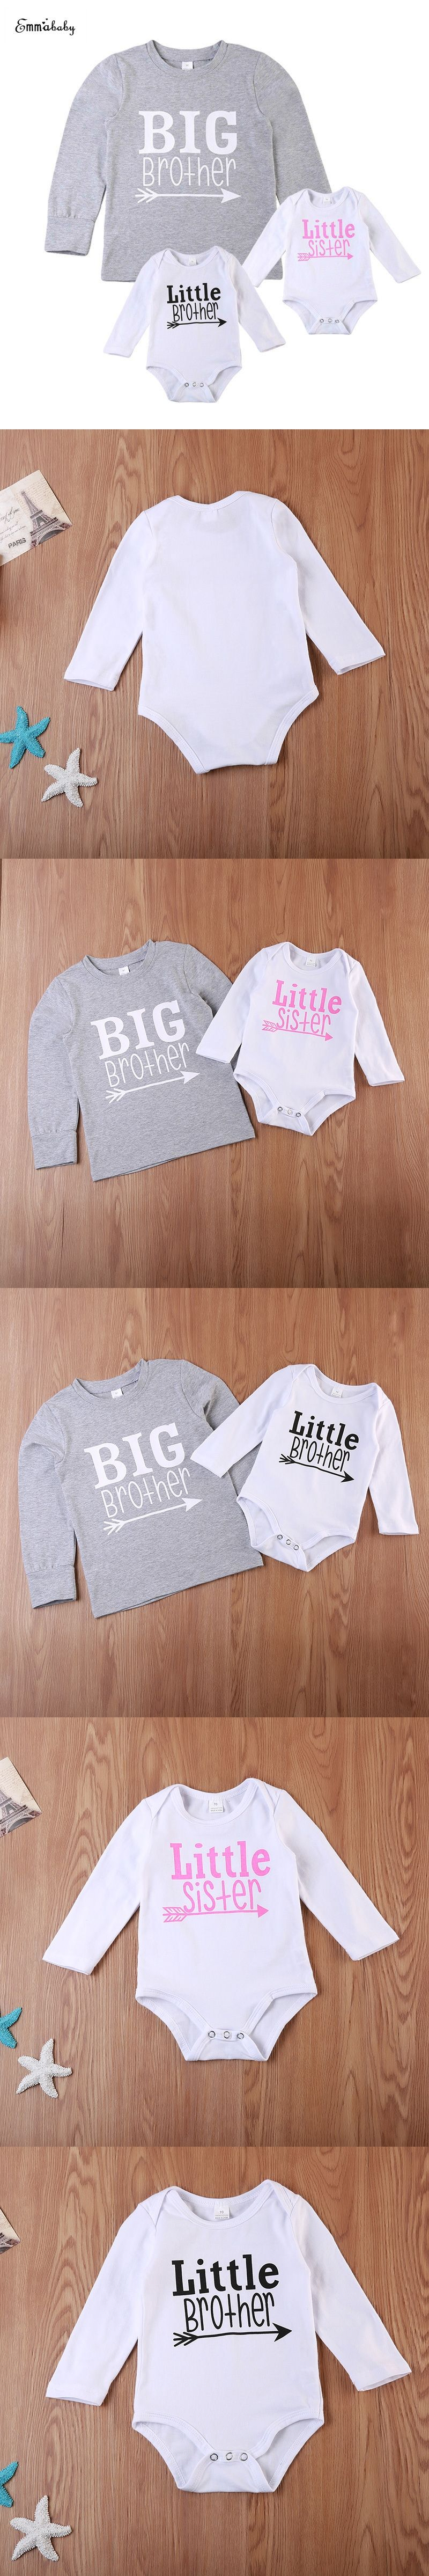 8115d2da Emmababy Casual Newborn Toddler Kids Clothes Long Sleeve Big Brother T-shirt  Little Sister Brother